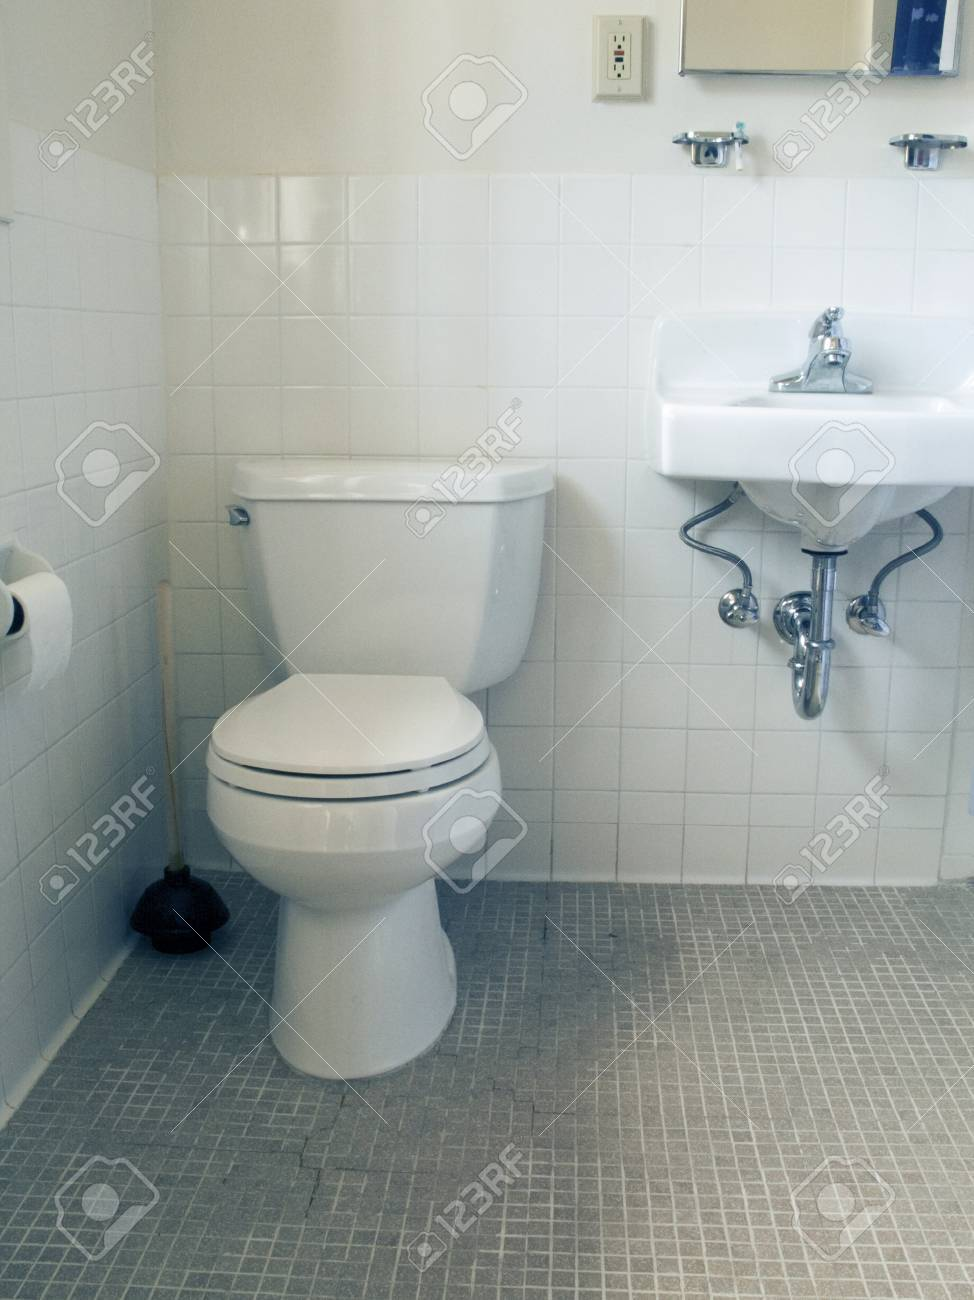 Small Bathroom With White Old White Tiles With Toilet And Sink Stock ...